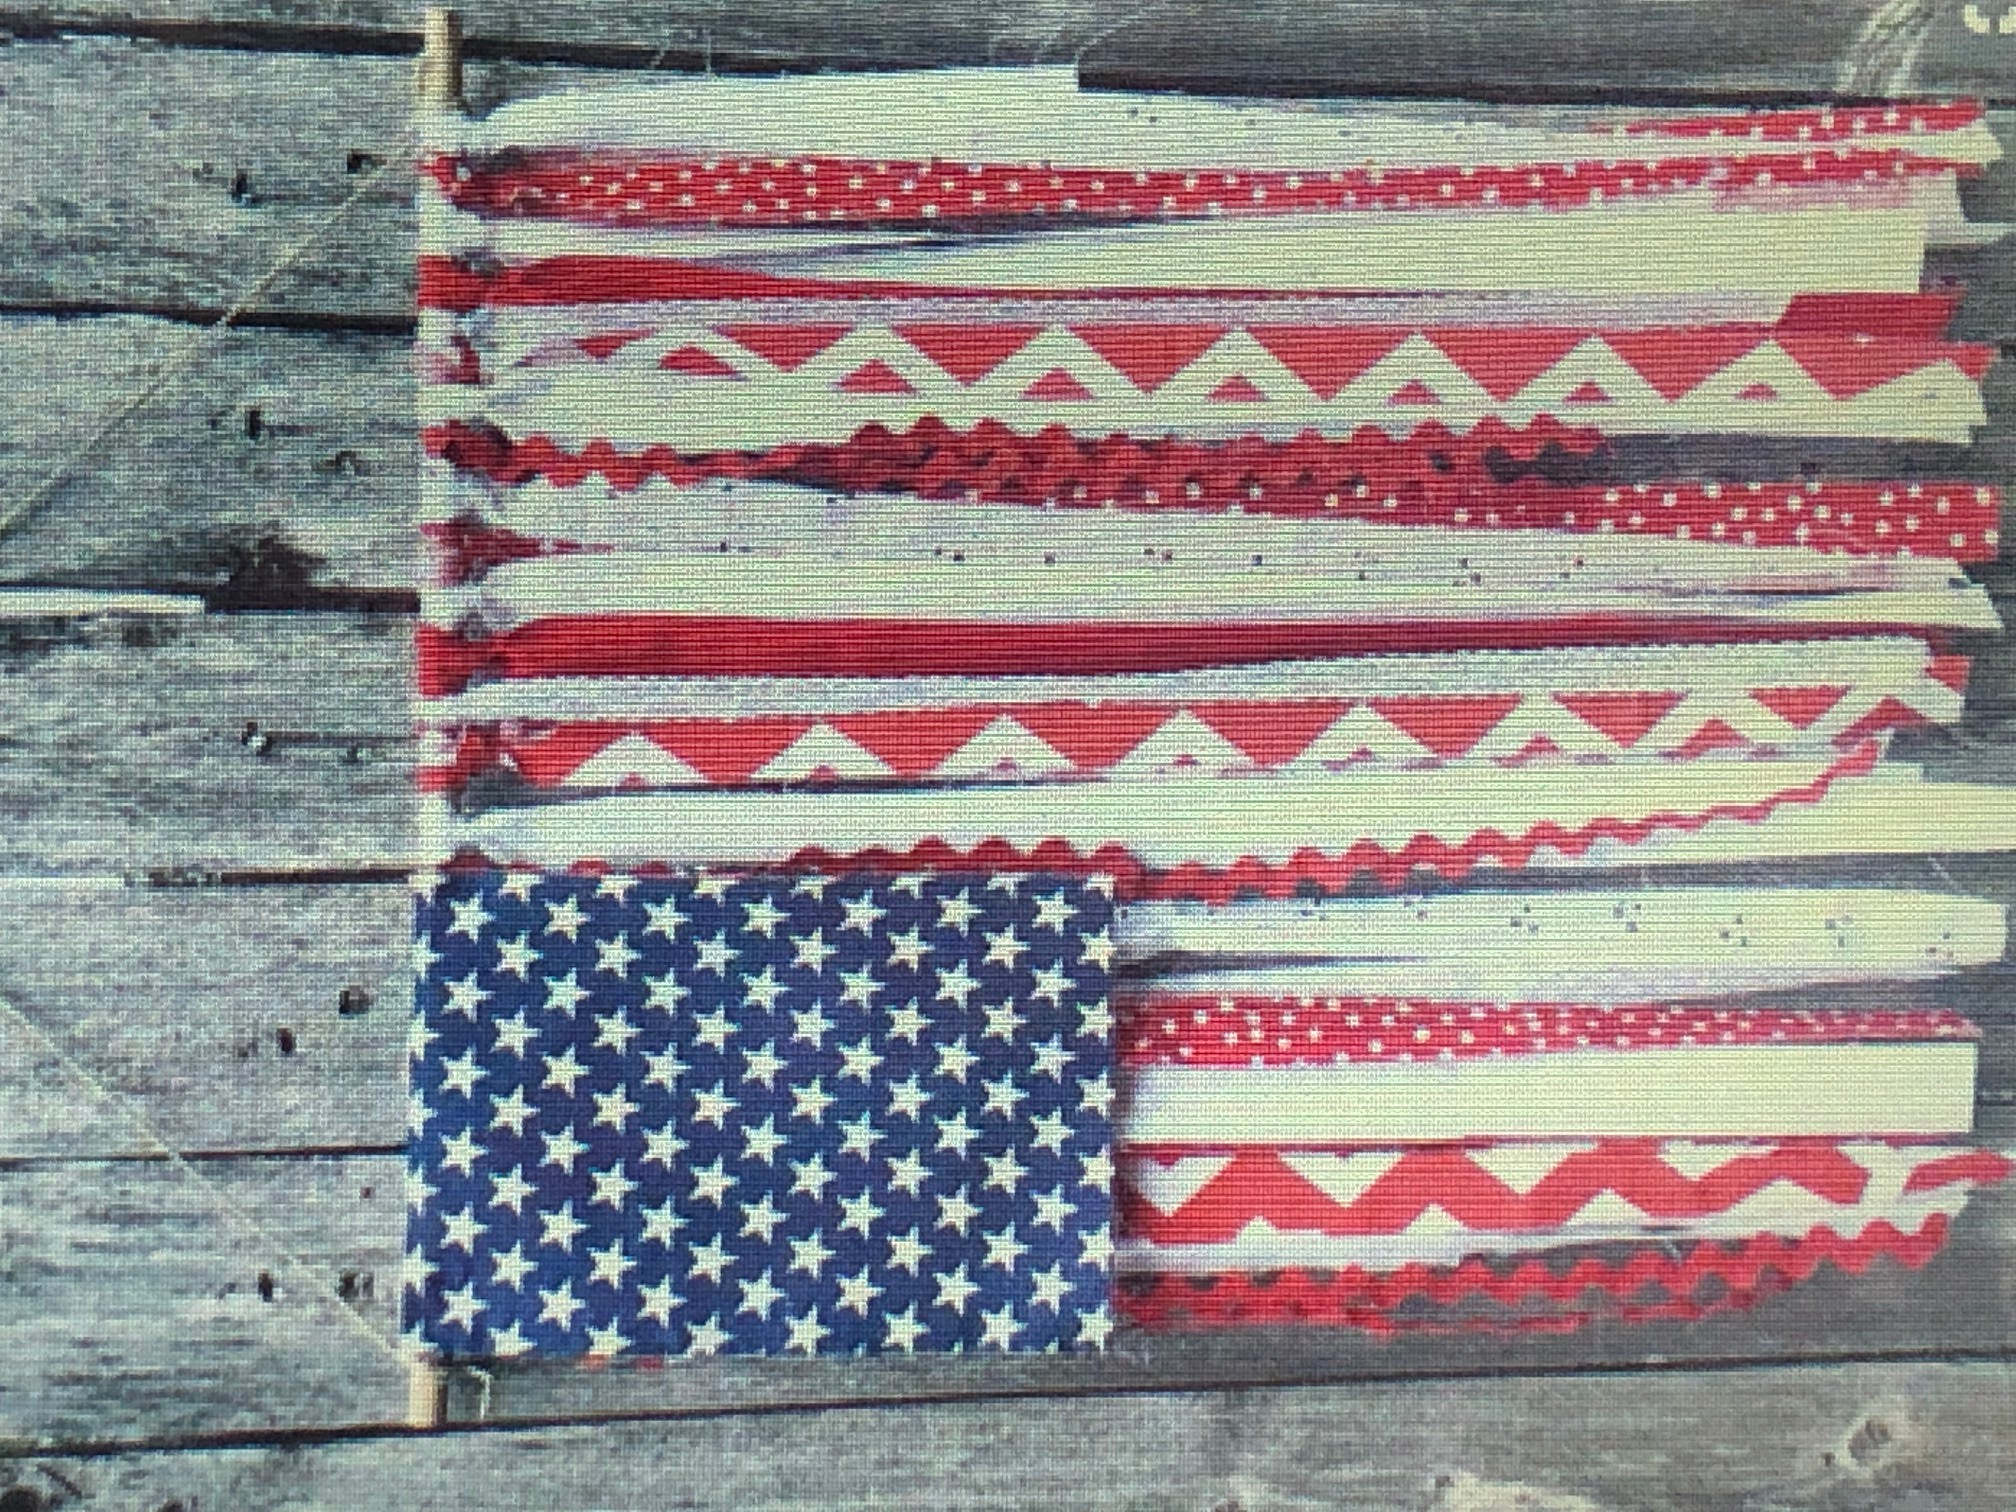 FABRIC TIED AMERICAN FLAG